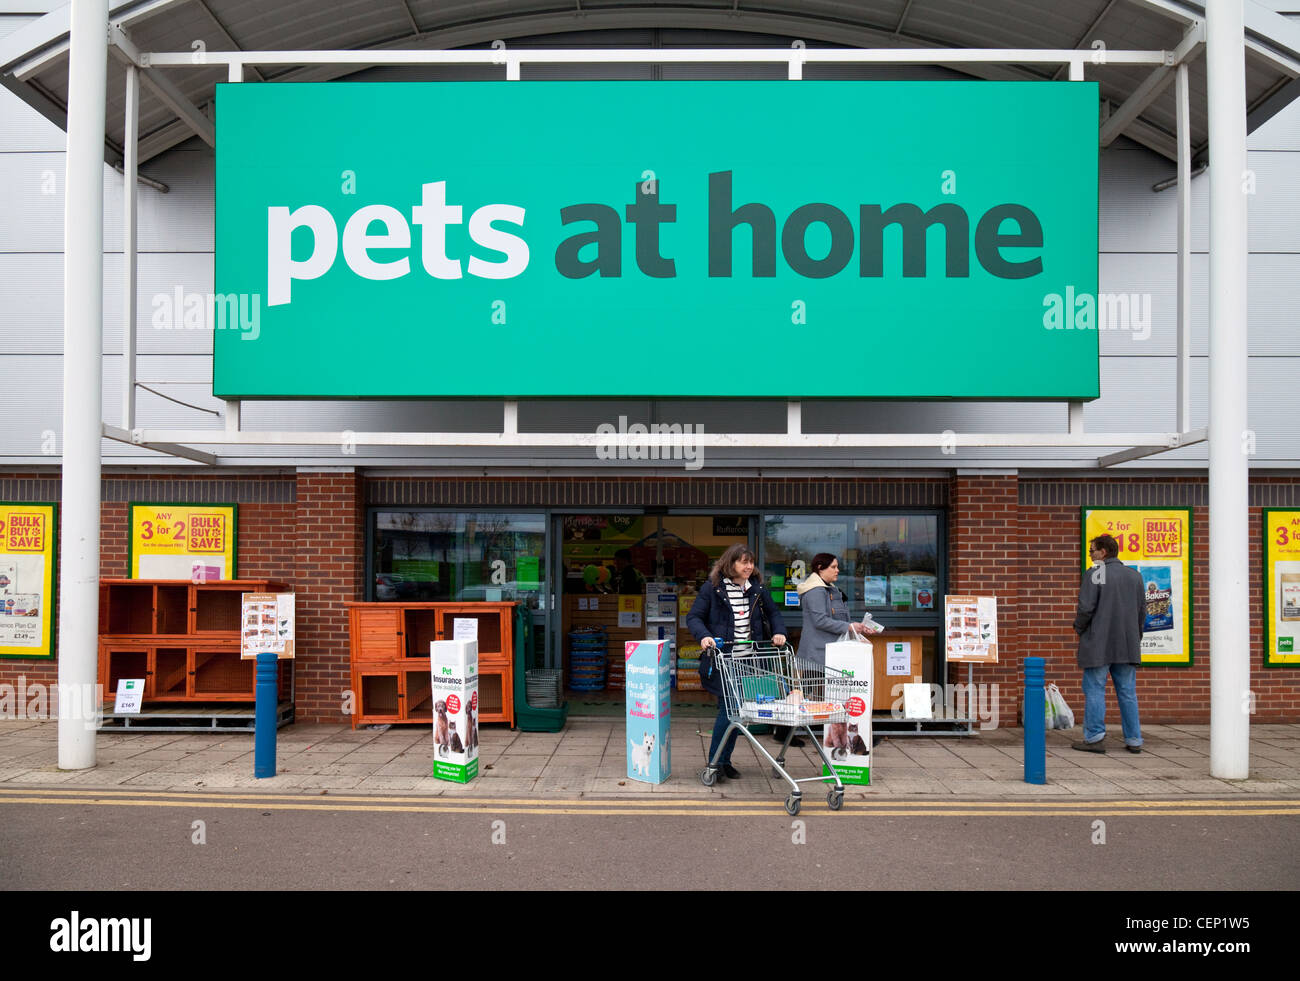 Pets at Home store, Newmarket Suffolk UK - Stock Image